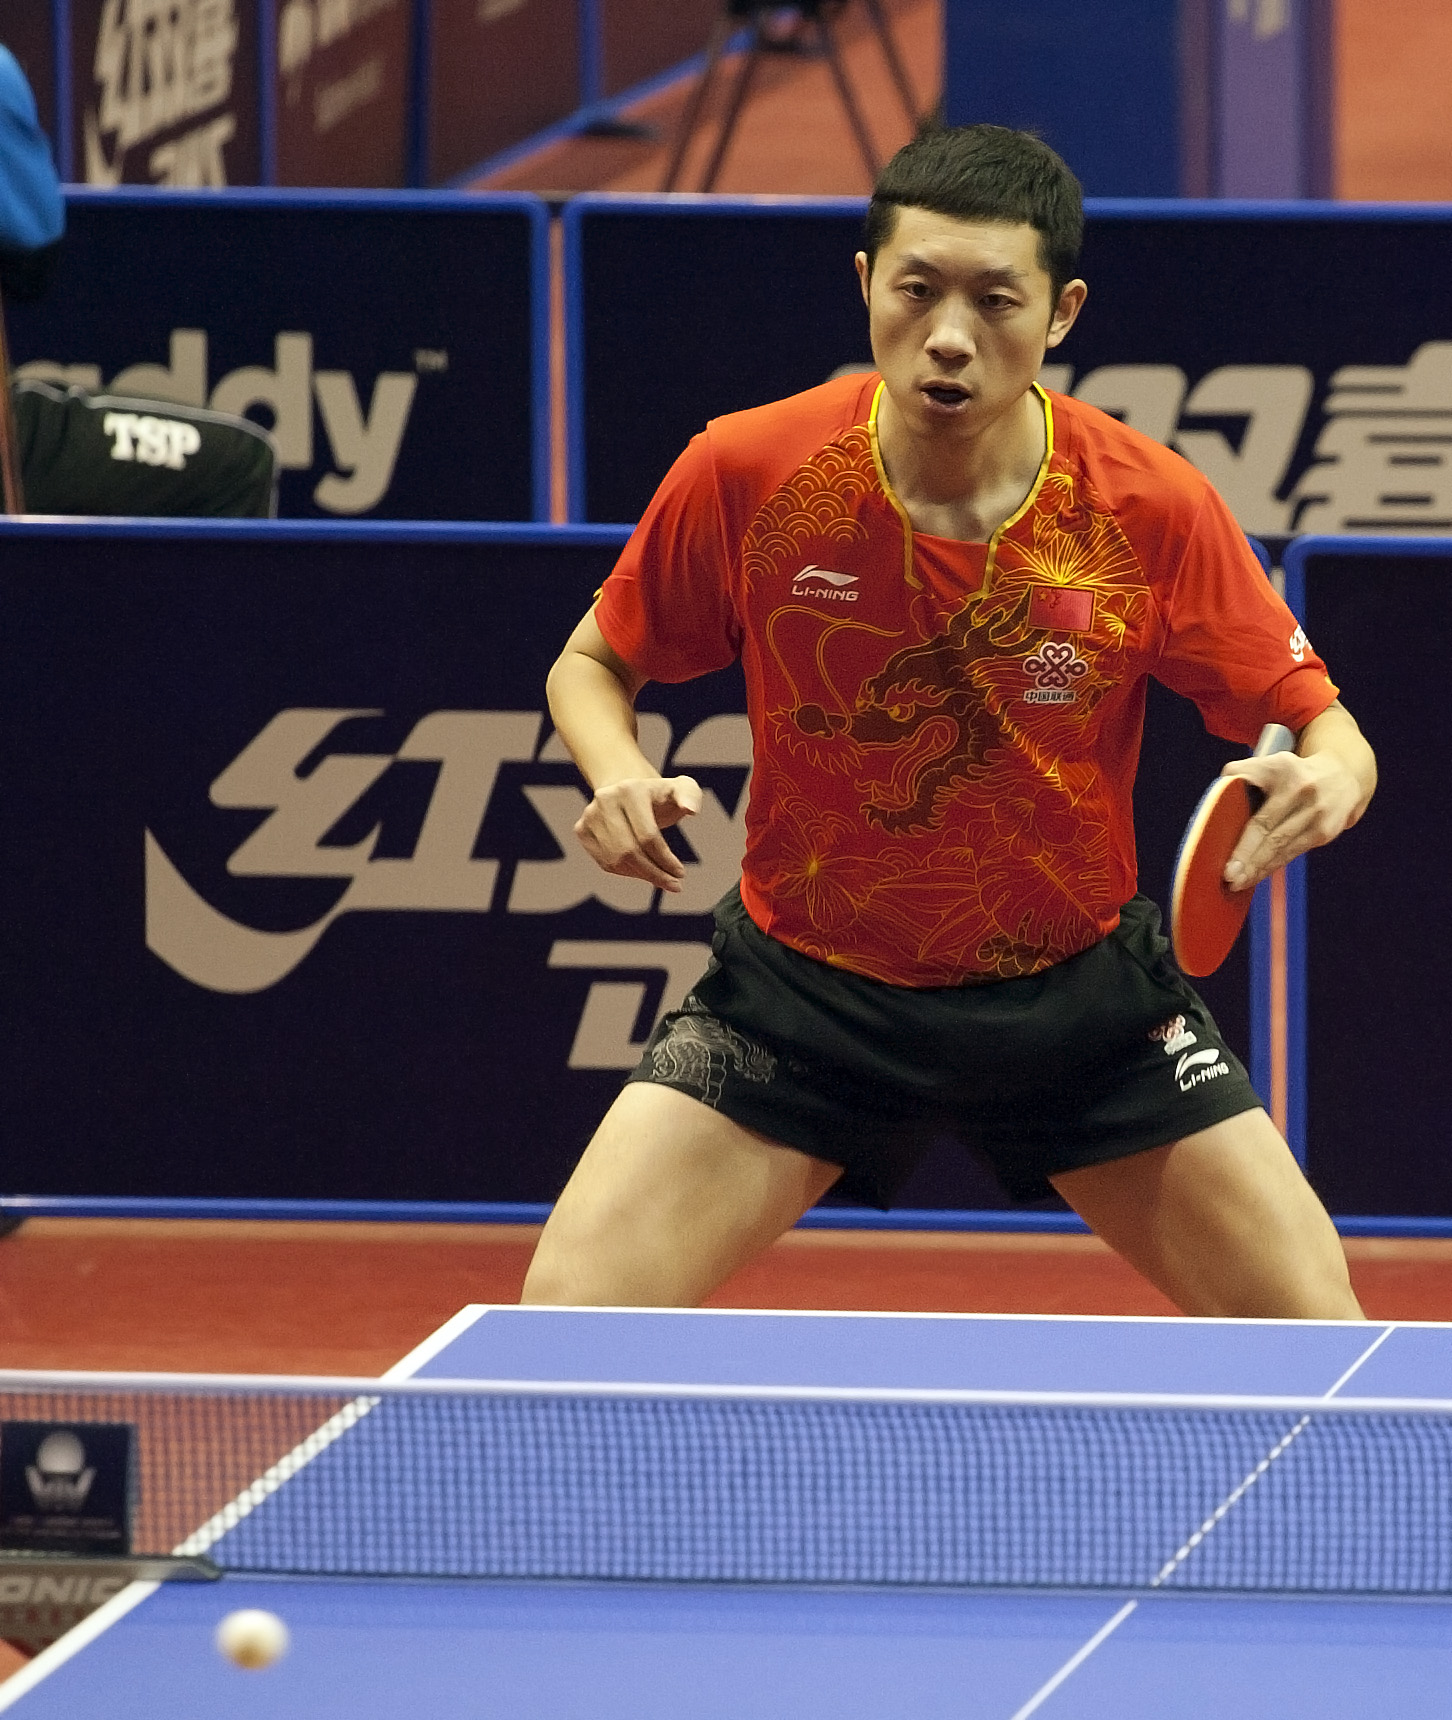 The 29-year old son of father (?) and mother(?) Xu Xin in 2019 photo. Xu Xin earned a  million dollar salary - leaving the net worth at 3 million in 2019